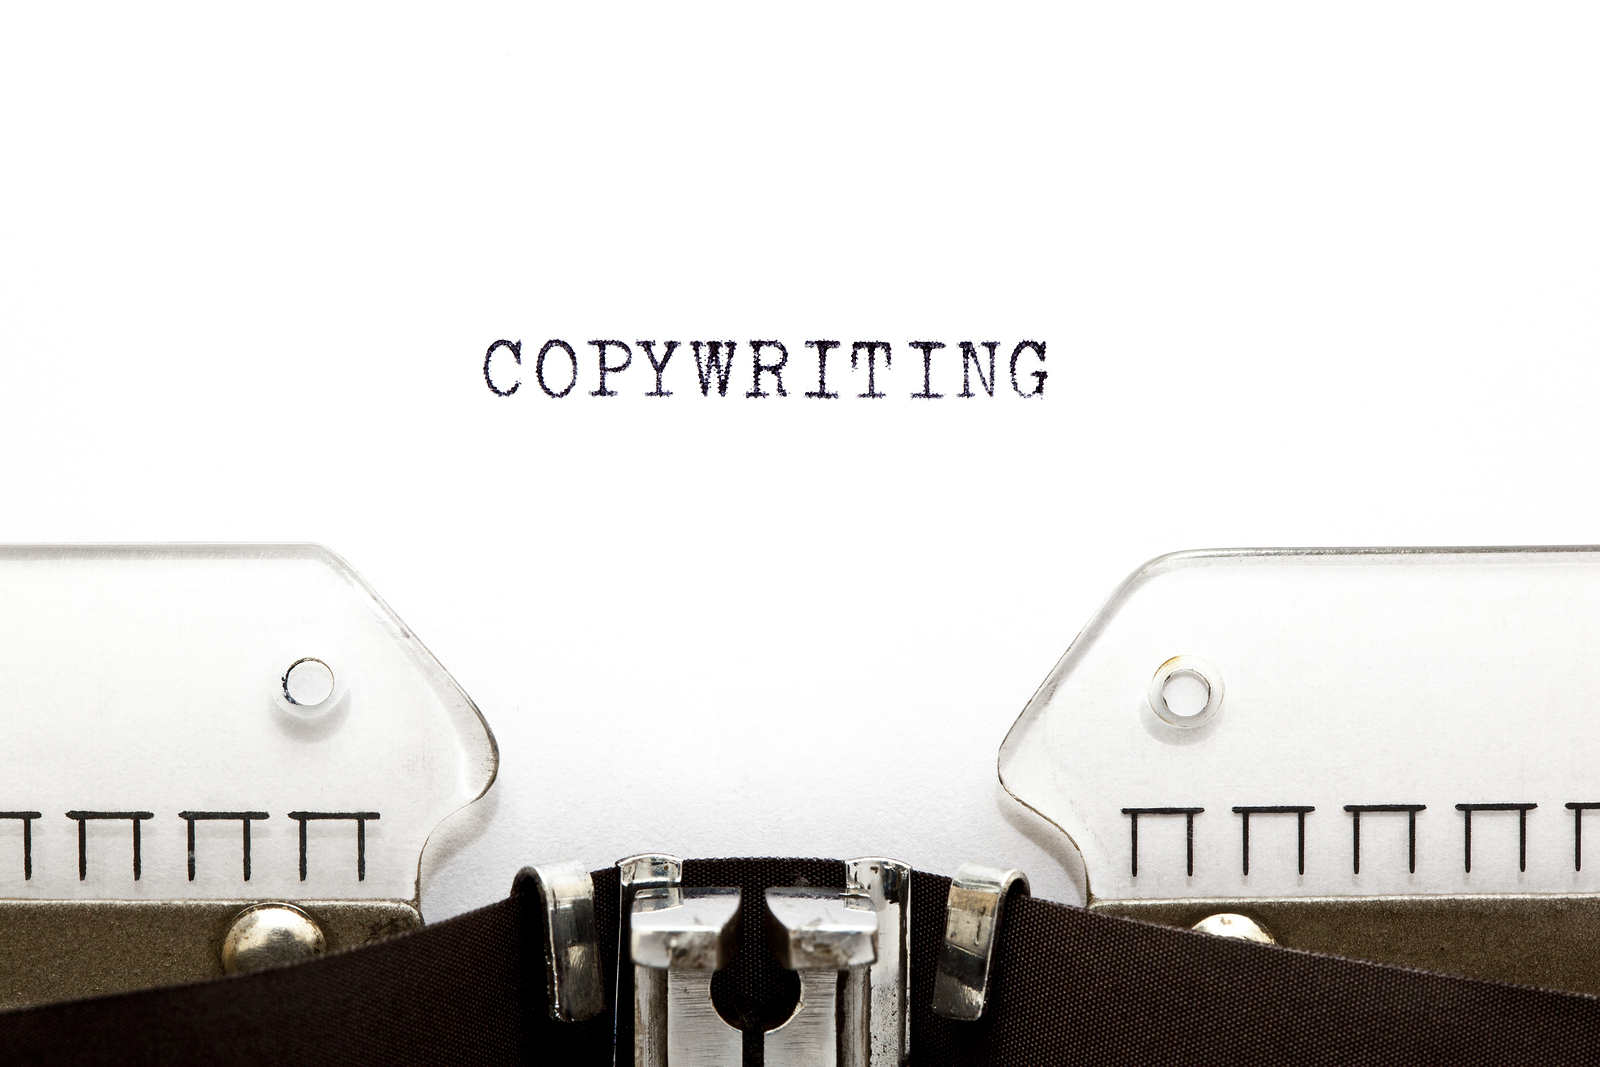 Copywriting e o marketing: entenda como funciona e como a técnica pode alavancar suas vendas – Parte II